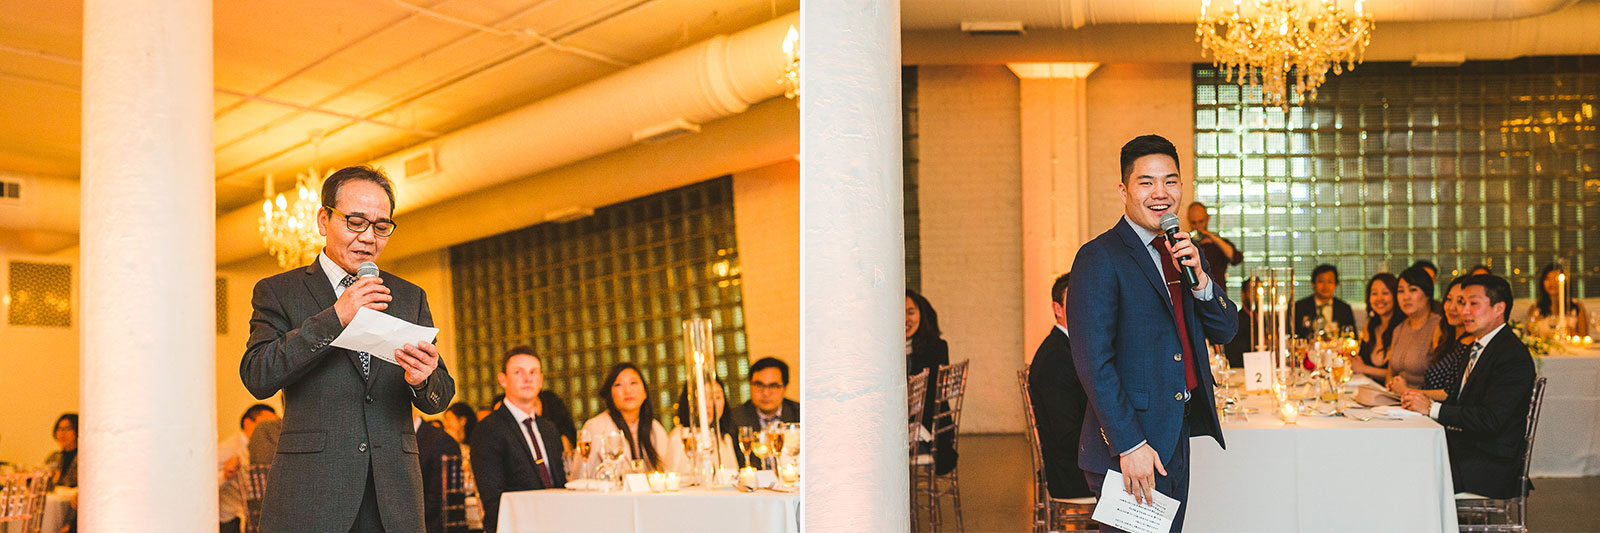 33 speeches at room 1520 - Rebecca + Doha // Wedding Photos at Room 1520 Chicago